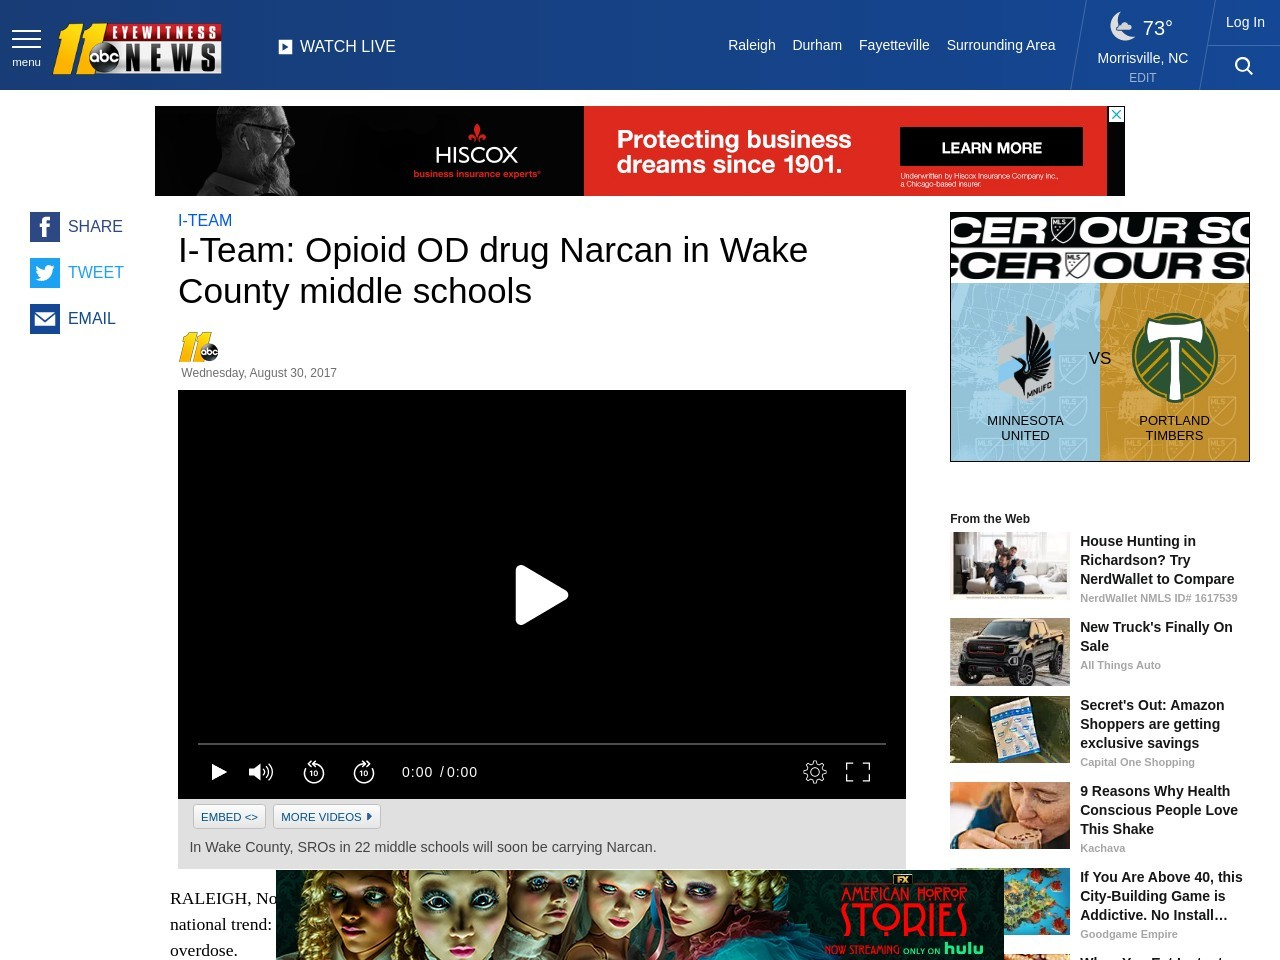 I-Team: Opioid OD drug Narcan in Wake County middle schools